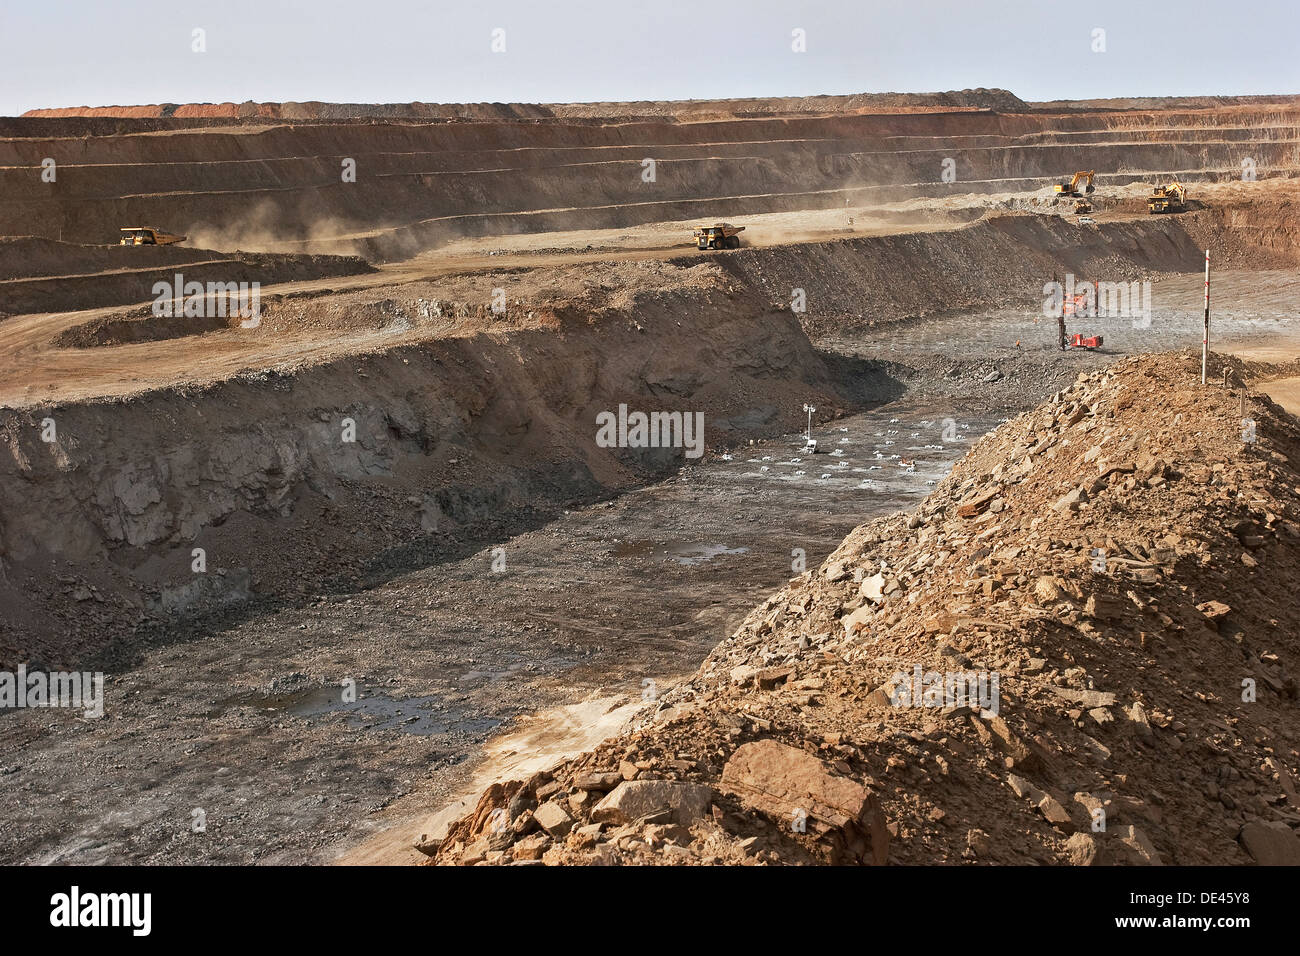 Surface pit gold mining, drilling holes for charges before blast with excavators and haul trucks on bench behind, Mauritania - Stock Image